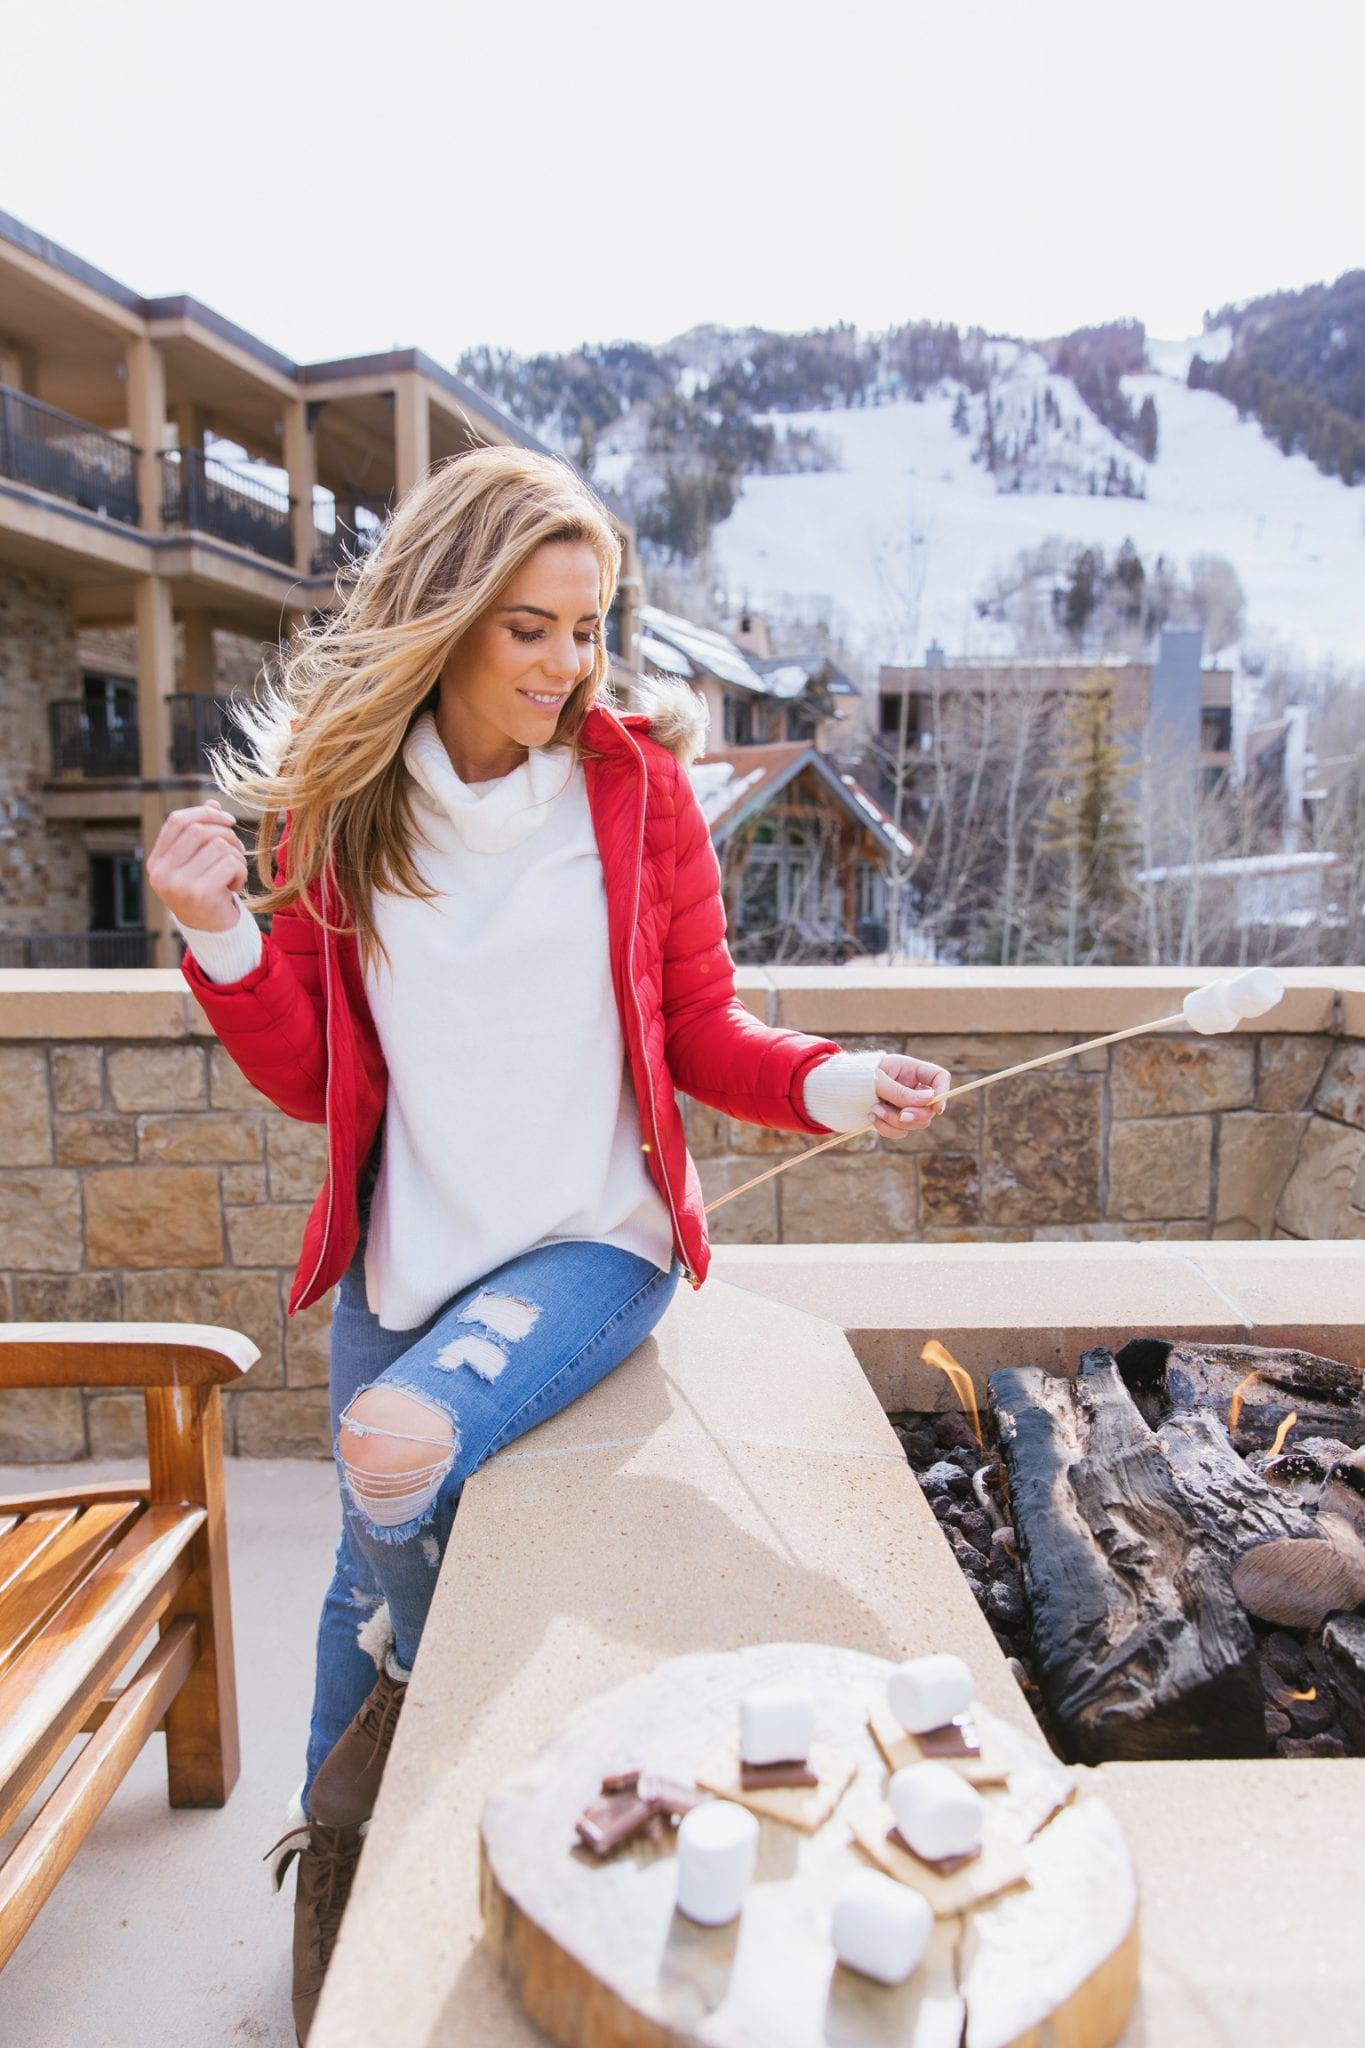 3 days in Aspen, aspen colorado, travel in aspen, Us travel, best places to stay in aspen, what to do in aspen